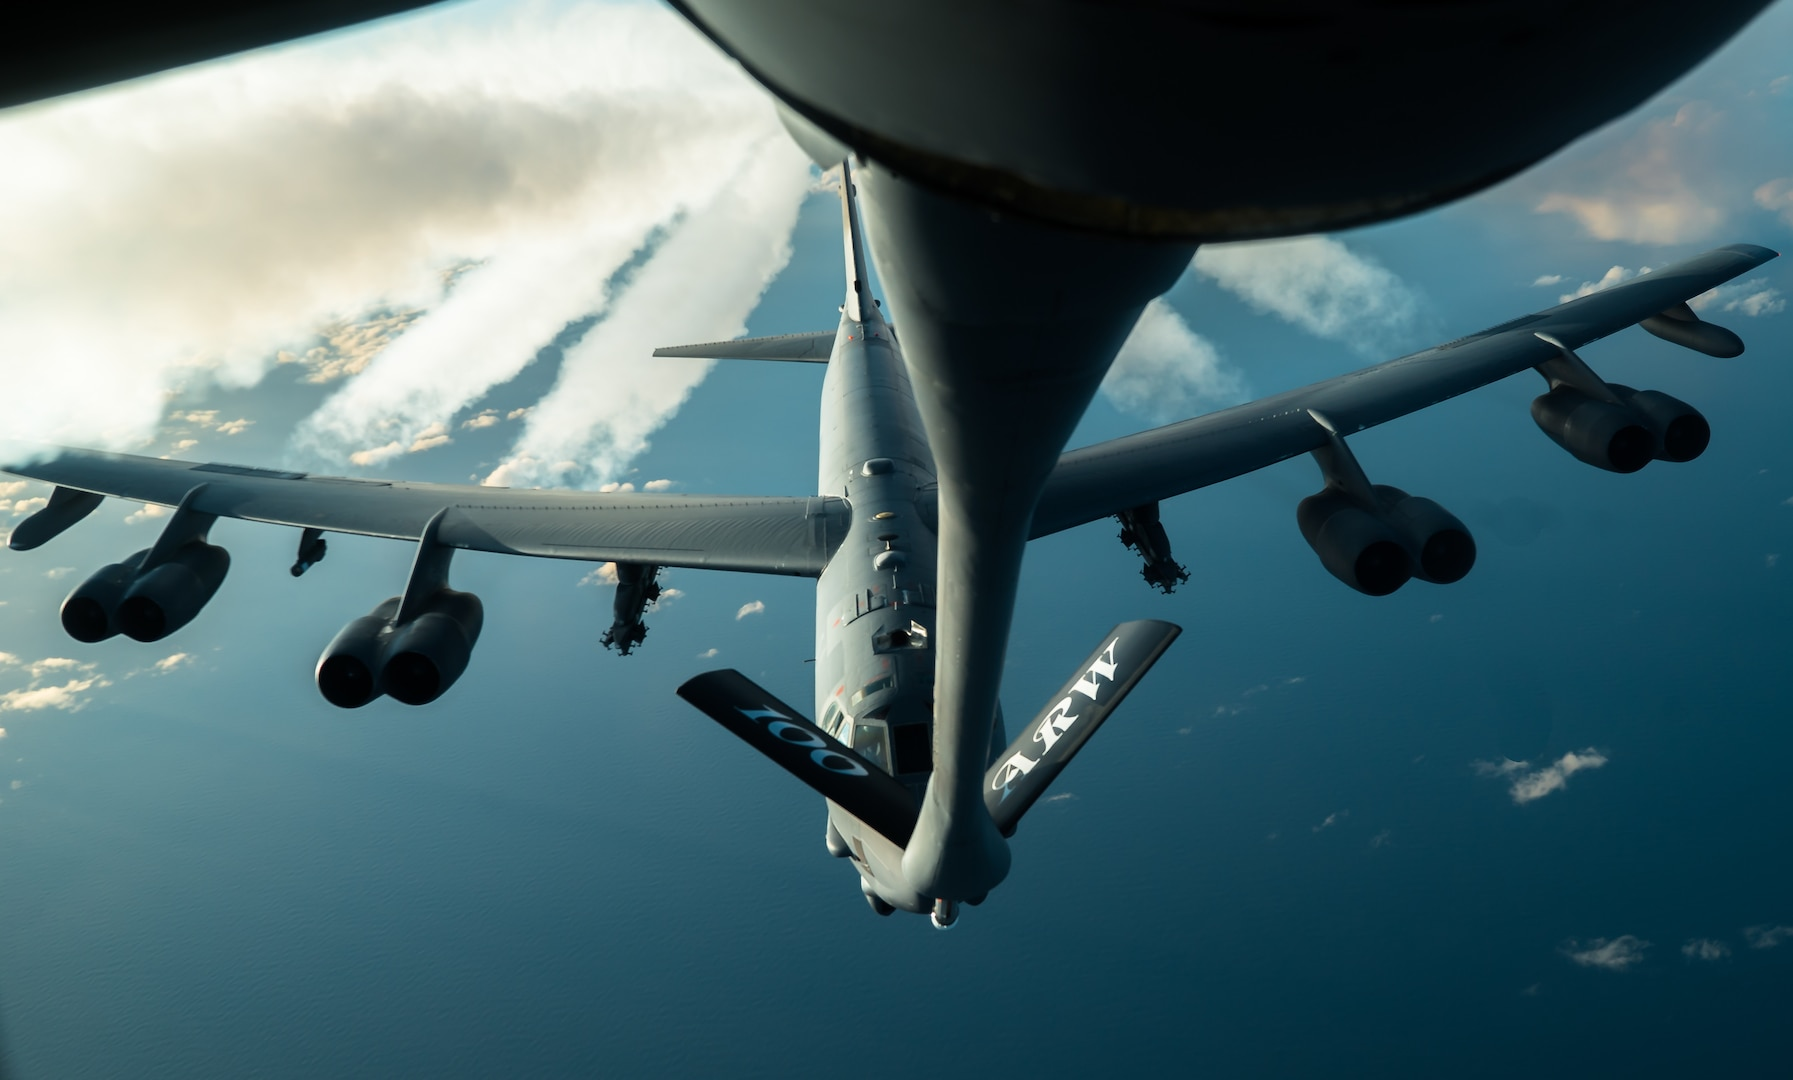 A U.S. Air Force B-52H Stratofortress, assigned to the 2nd Bomb Wing from Barksdale Air Force Base, Louisiana, prepares to receive fuel from a 100th Air Refueling Wing KC-135 Stratotanker over the Arctic during Bomber Task Force 20-1, Nov. 6, 2019. This deployment allows aircrews and support personnel to conduct theater integration and improve bomber interoperability with joint partners and allied nations. (U.S. Air Force photo by Staff Sgt. Trevor T. McBride)